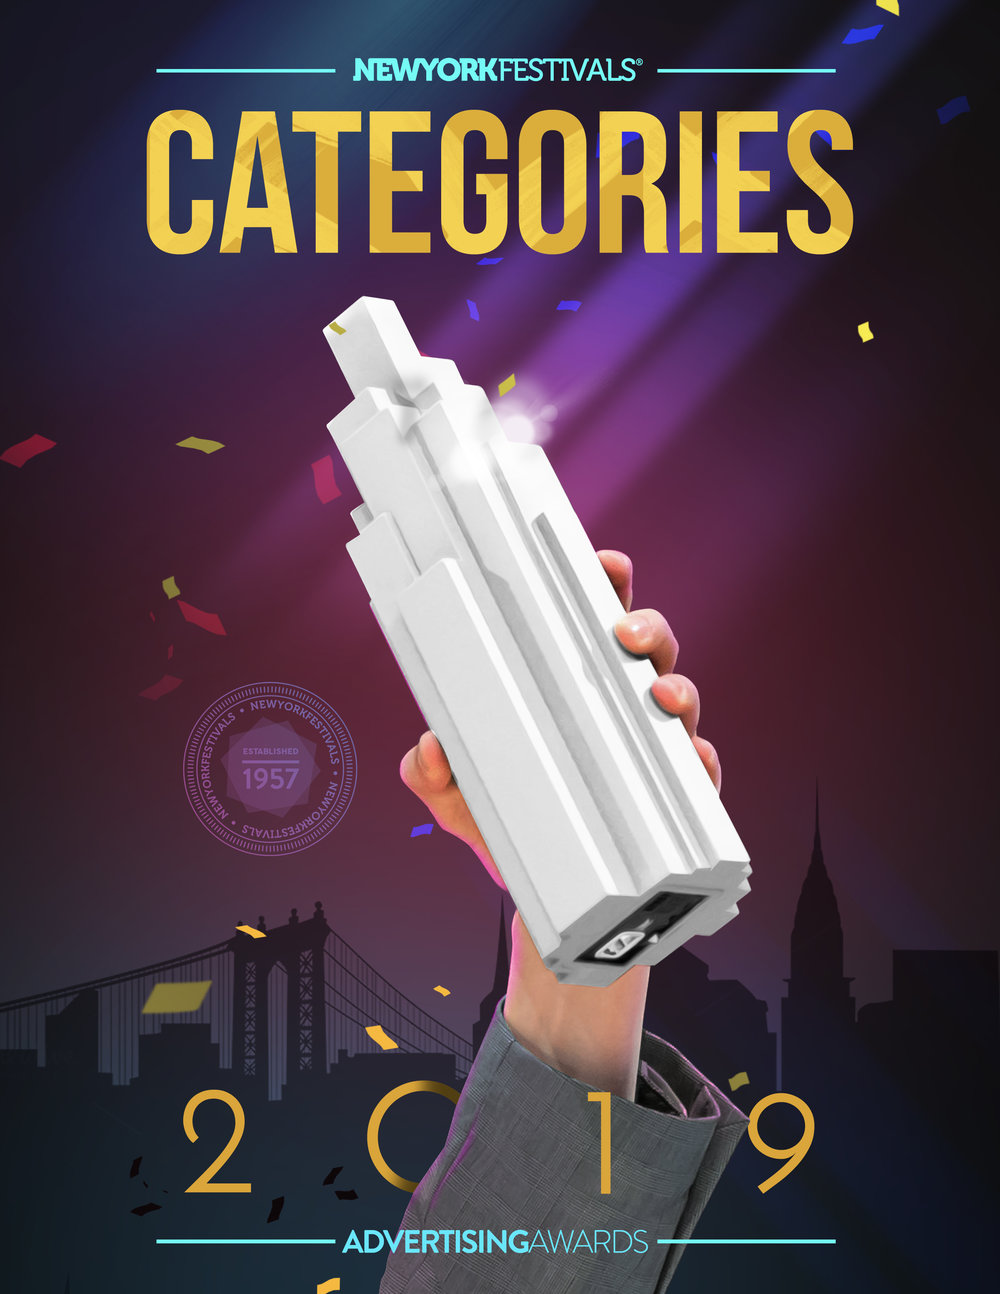 Find details about the categories within each of the 20 category groups, to select where your entry fits best. Most categories allow single or campaign entries, specific details and entry limits can be found with each competition in the document.